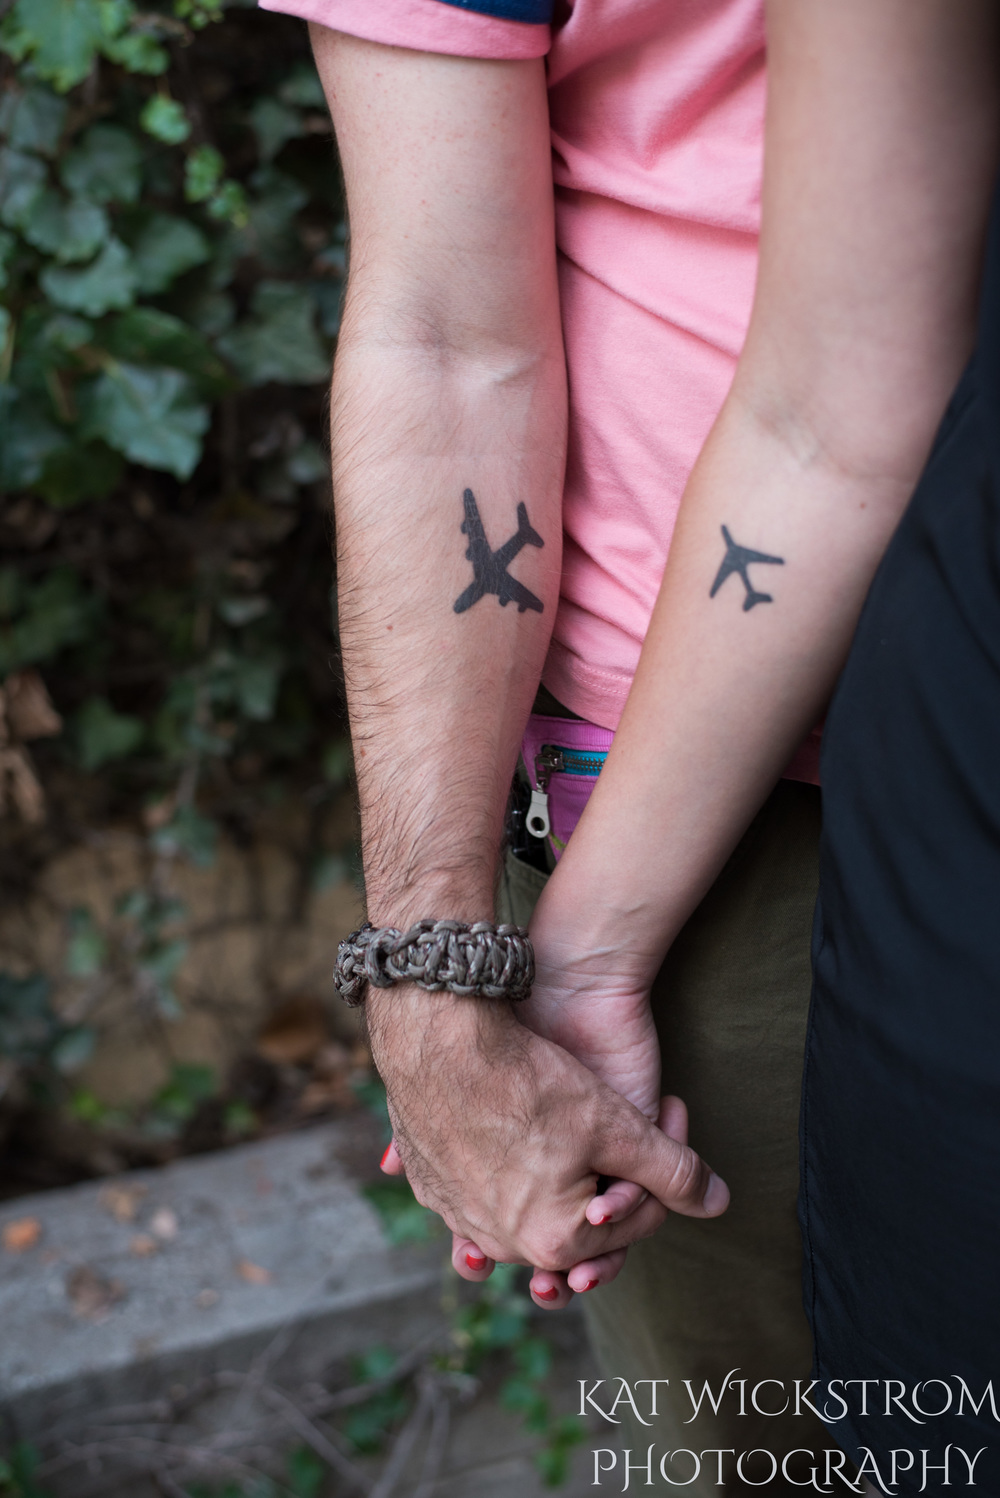 They both got matching tattoos recently of airplanes. This is a representation of their desire to travel the world together.